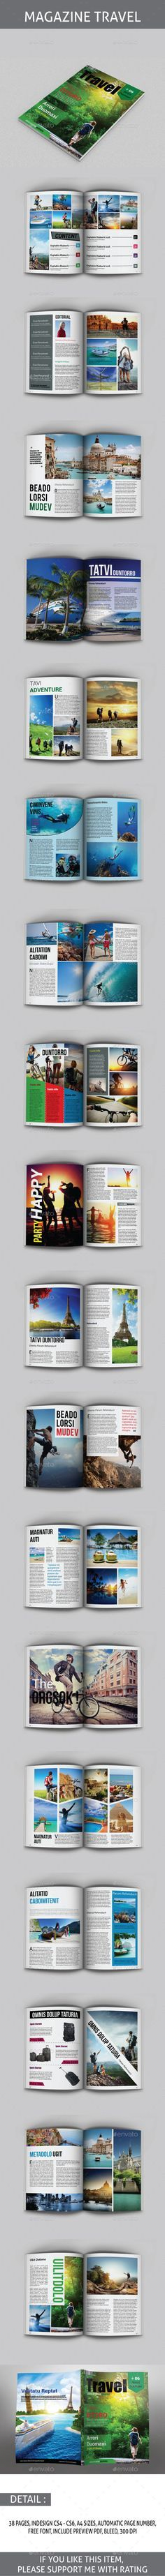 """Travel Magazine Template — InDesign INDD <a class=""""pintag"""" href=""""/explore/design/"""" title=""""#design explore Pinterest"""">#design</a> <a class=""""pintag"""" href=""""/explore/layout/"""" title=""""#layout explore Pinterest"""">#layout</a> • Available here → <a href=""""https://graphicriver.net/item/travel-magazine-template/8779120?ref=pxcr"""" rel=""""nofollow"""" target=""""_blank"""">graphicriver.net/...</a>"""